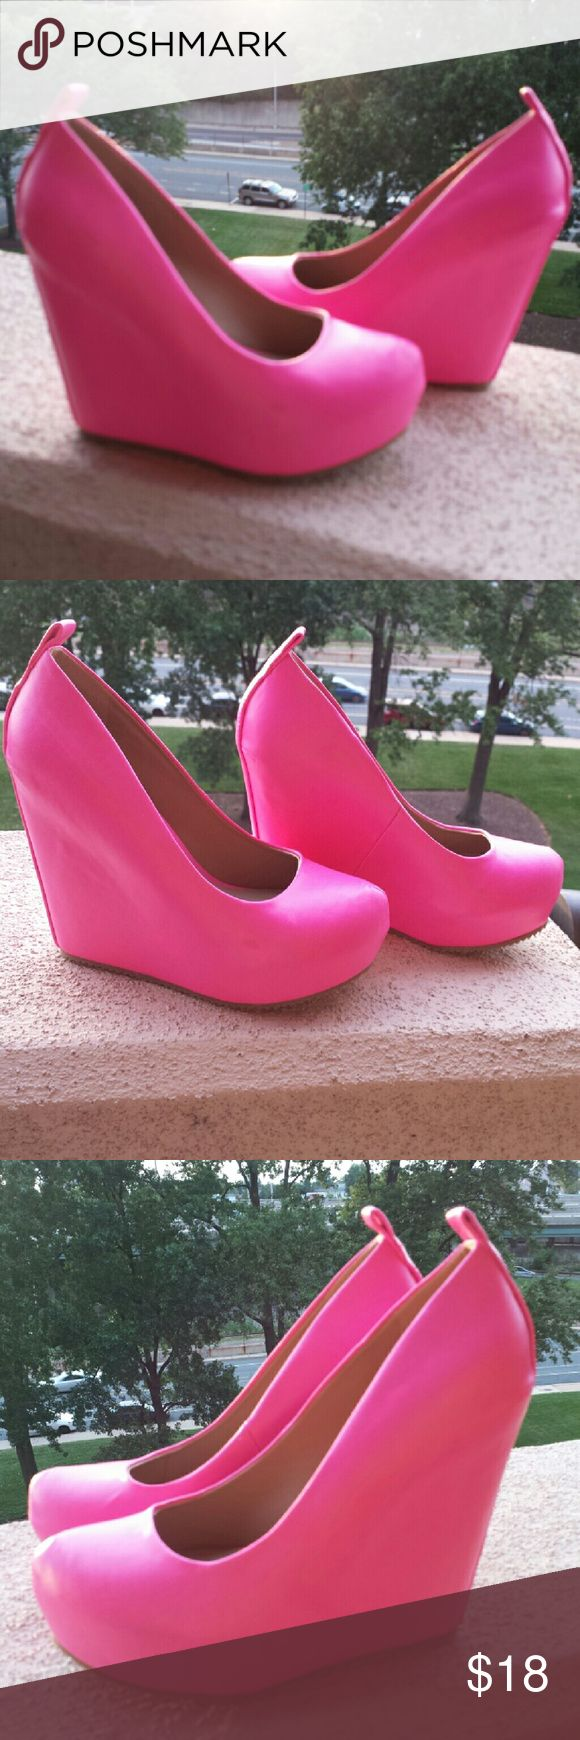 Hot pink platform wedges by Elle Hot pink wedges with covered platforms. Rounded toes and high heels...about 4 inches.  Excellent condition, never worn.  Made by Elle. Elle  Shoes Wedges